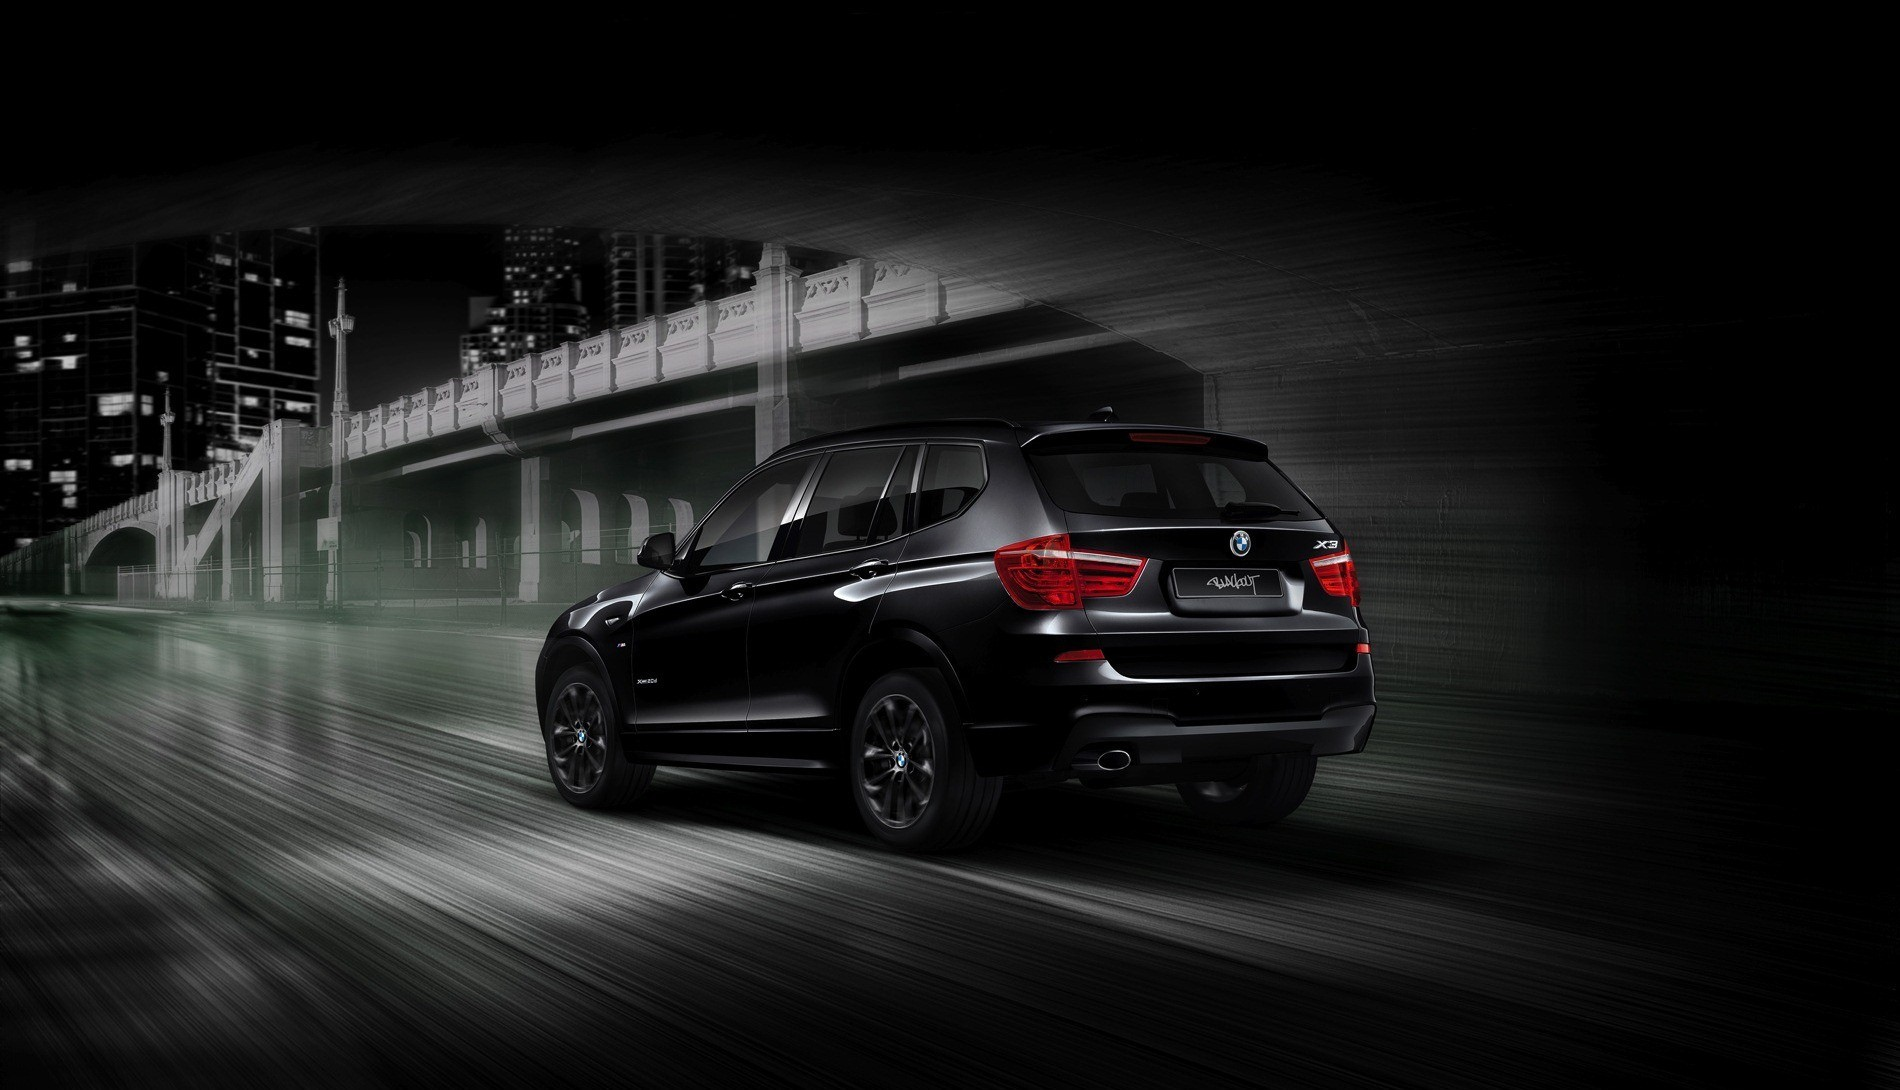 BMW-X3-blacked-out-3